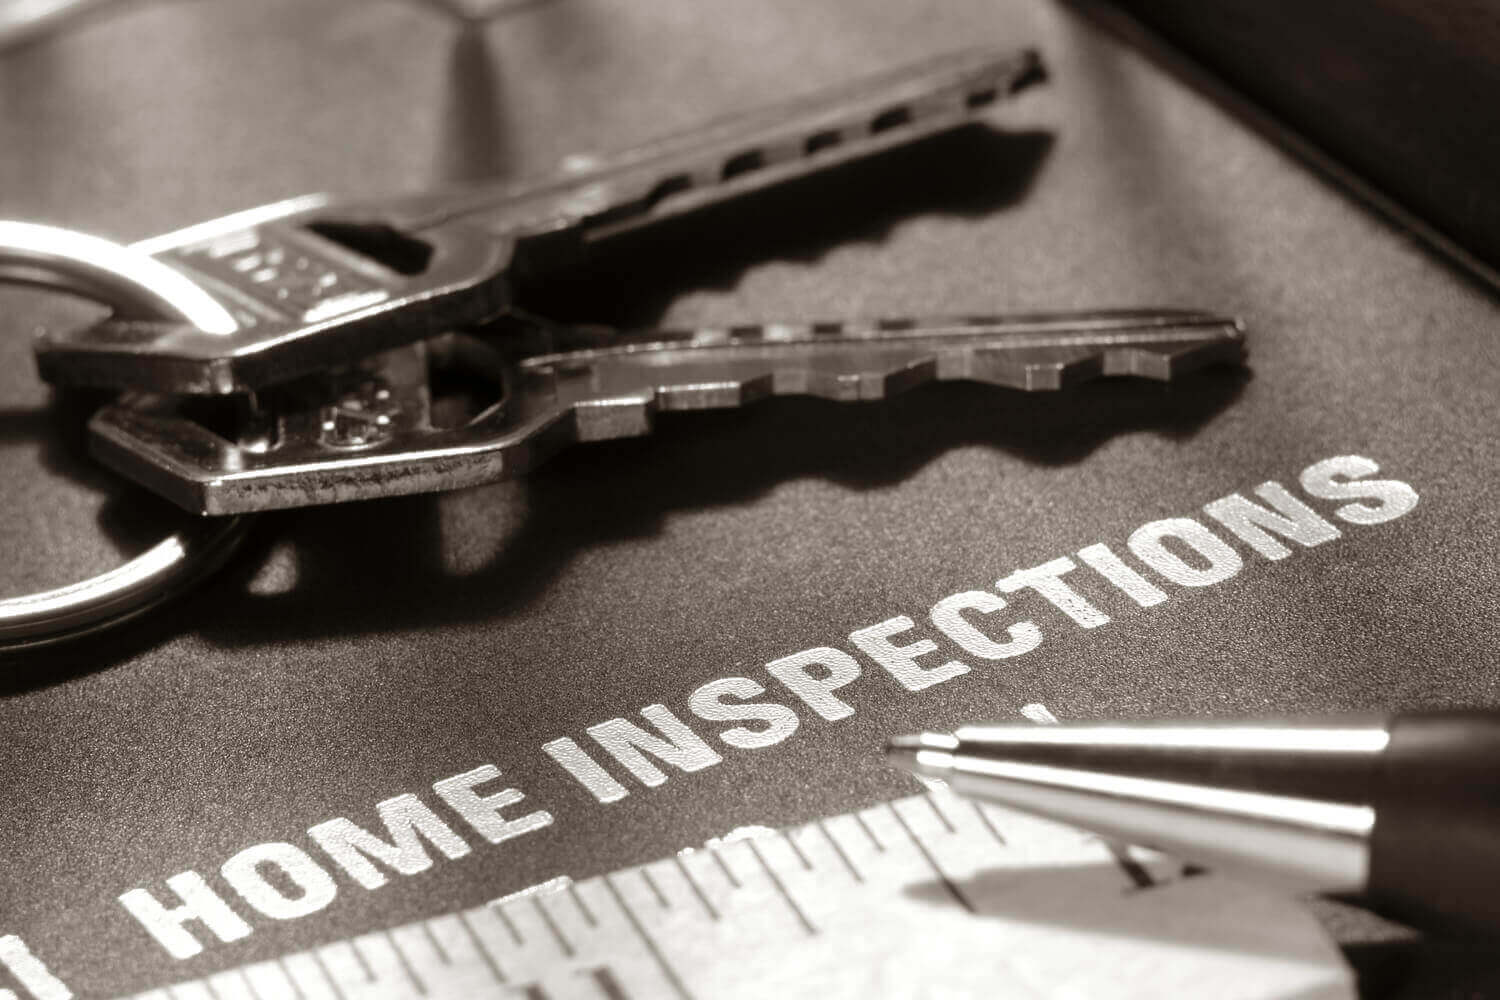 The 360 degree Tenant Inspection Checklist